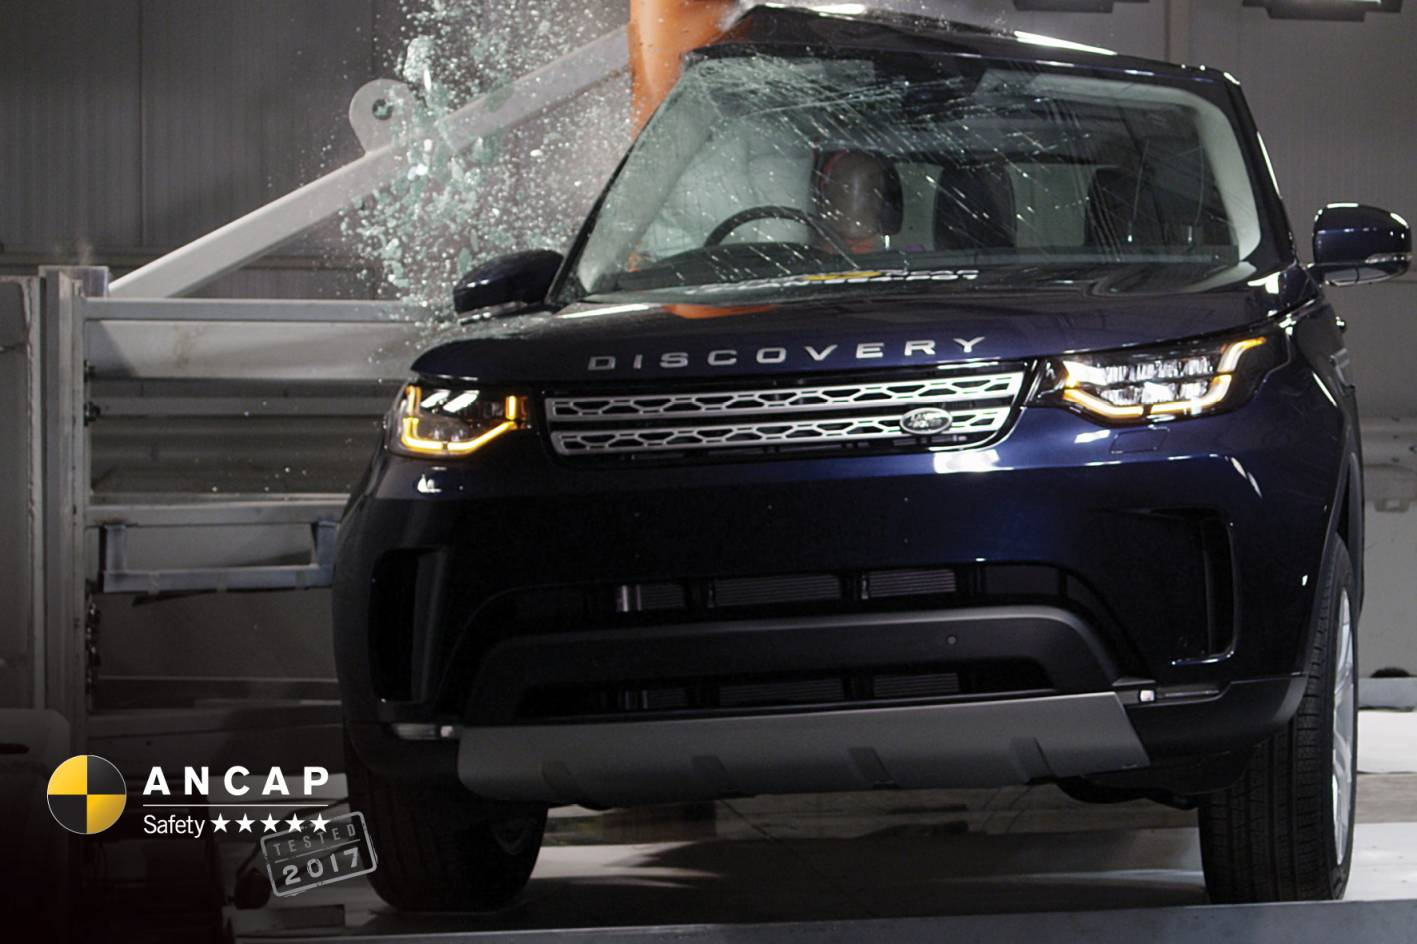 2017 Land Rover Discovery gets 5-star safety rating